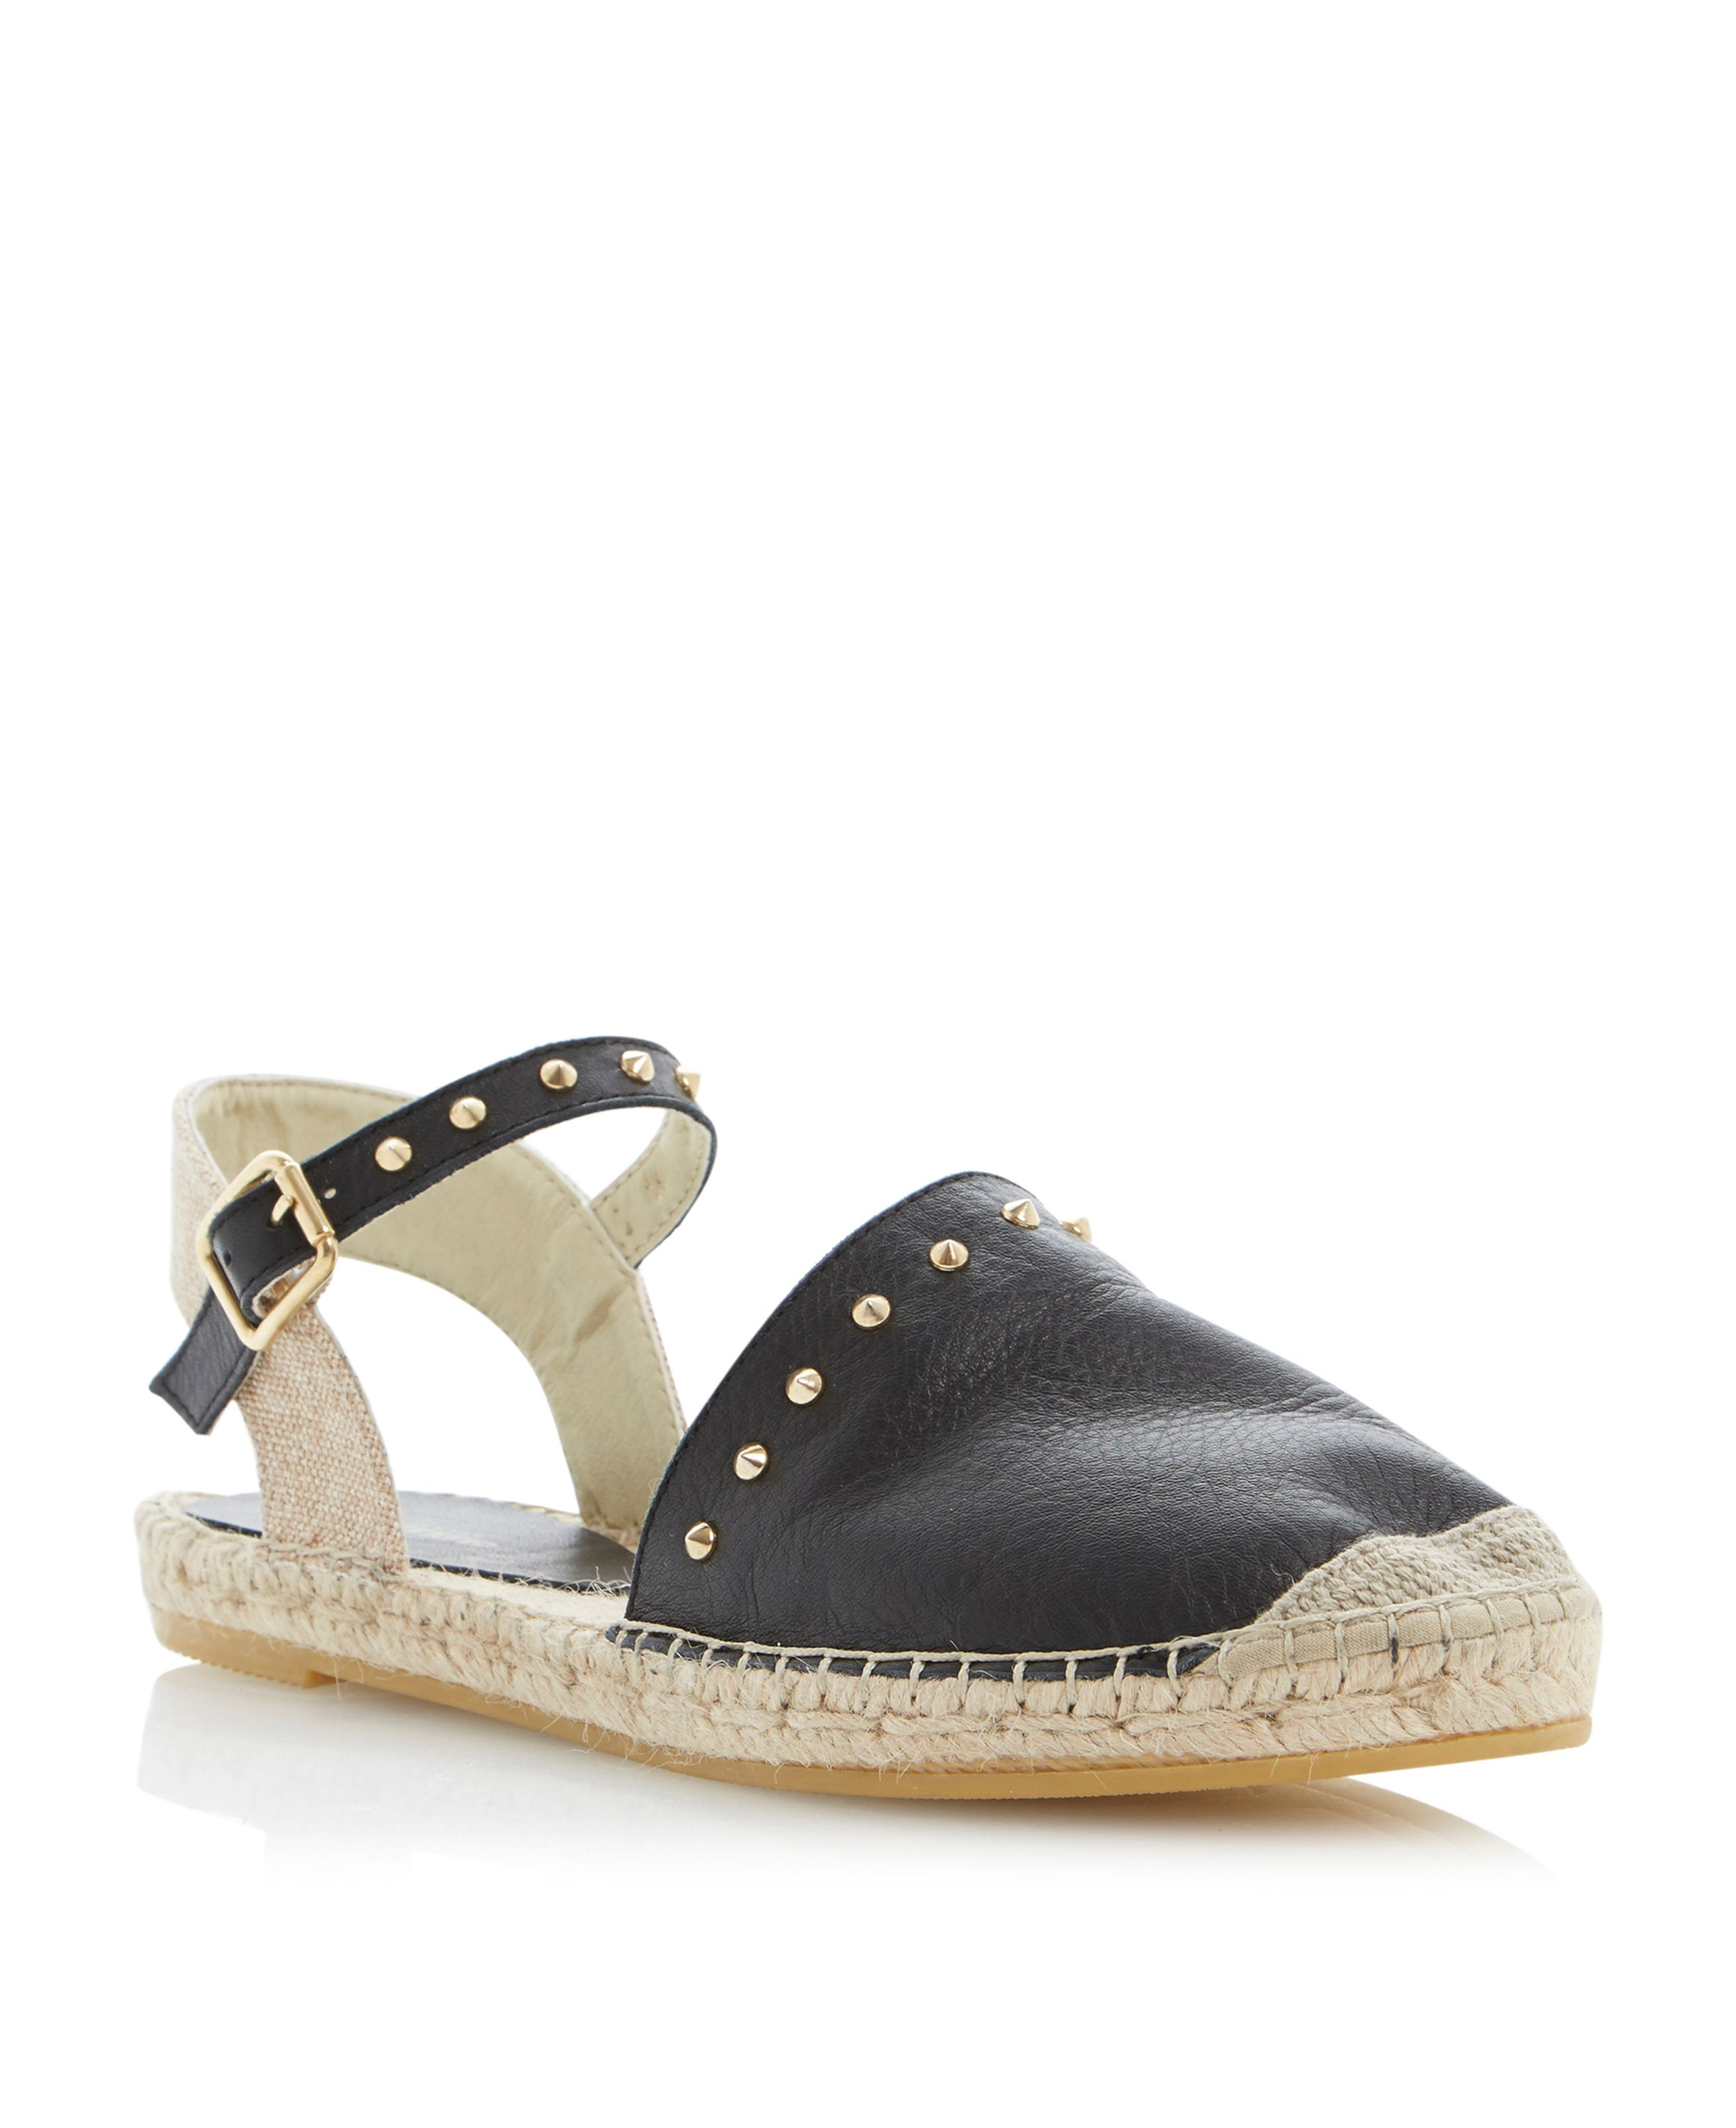 Joka leather peeptoe flat espadrille sandals